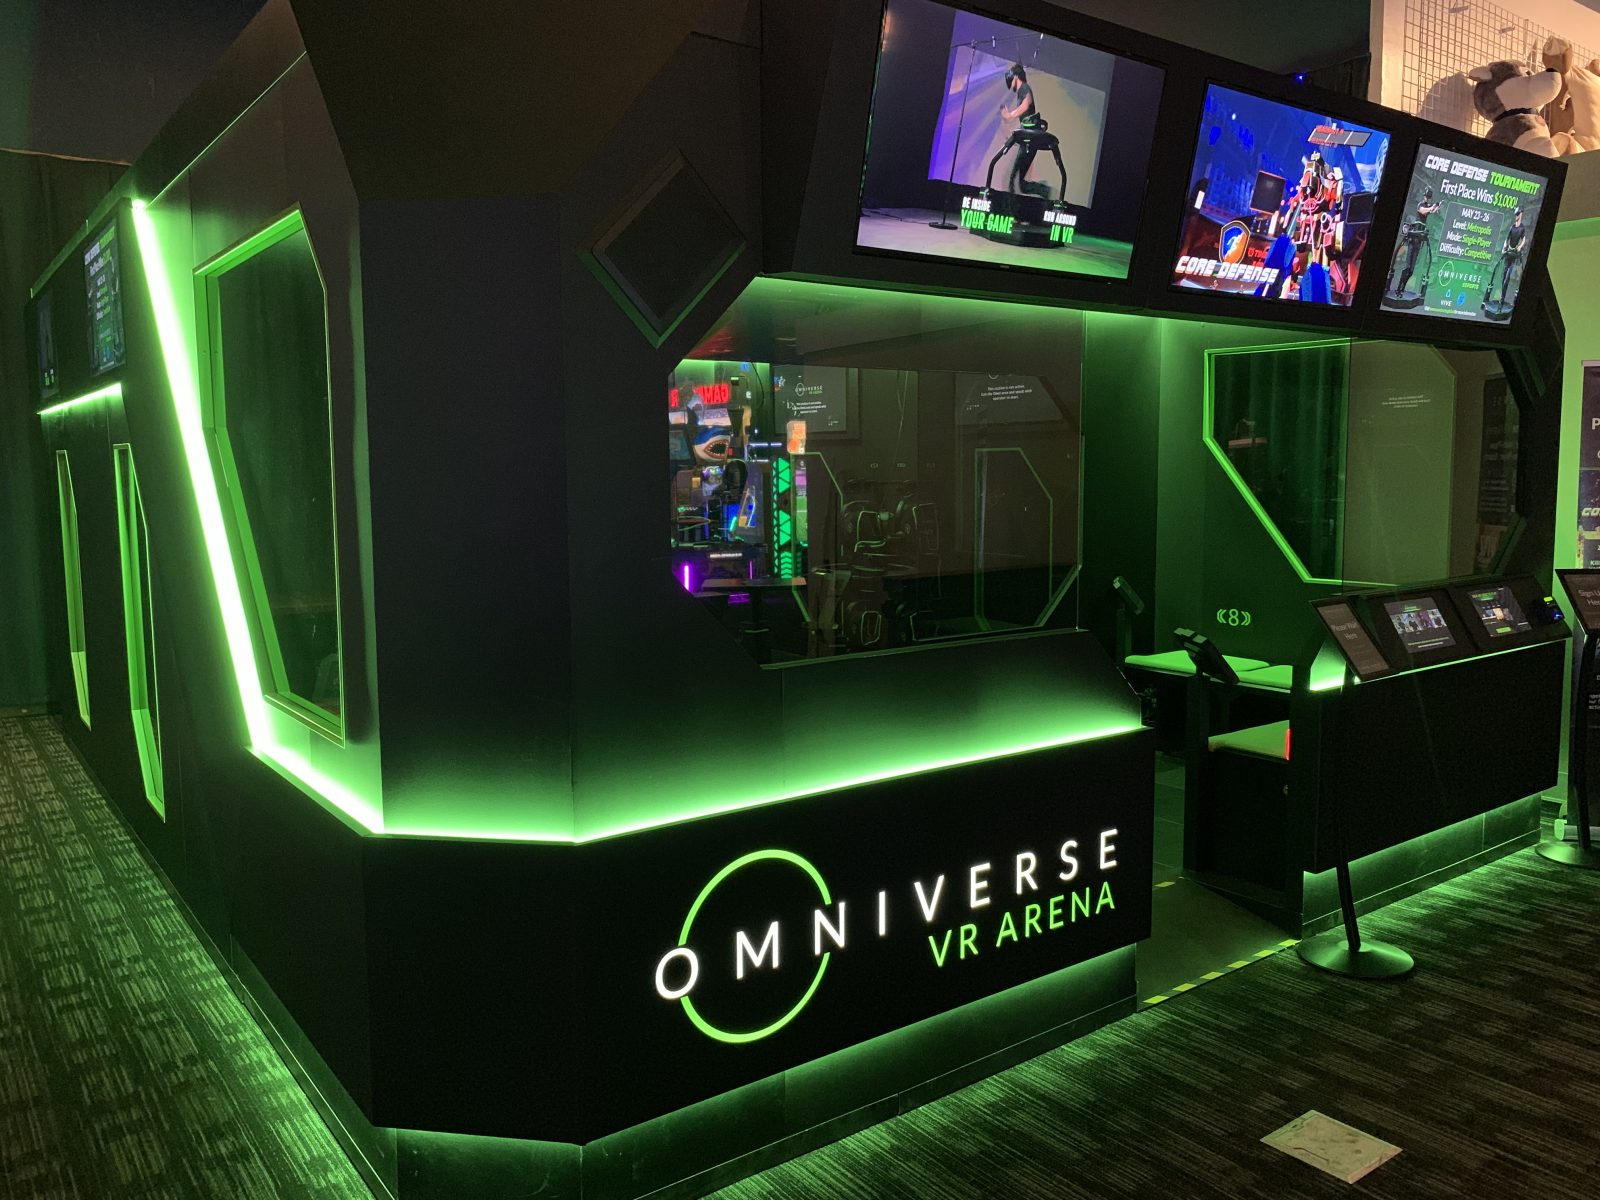 Dave And Busters Halloween 2020 Virtuix debuts VR Arena at Dave & Busters in Austin, Texas | blooloop